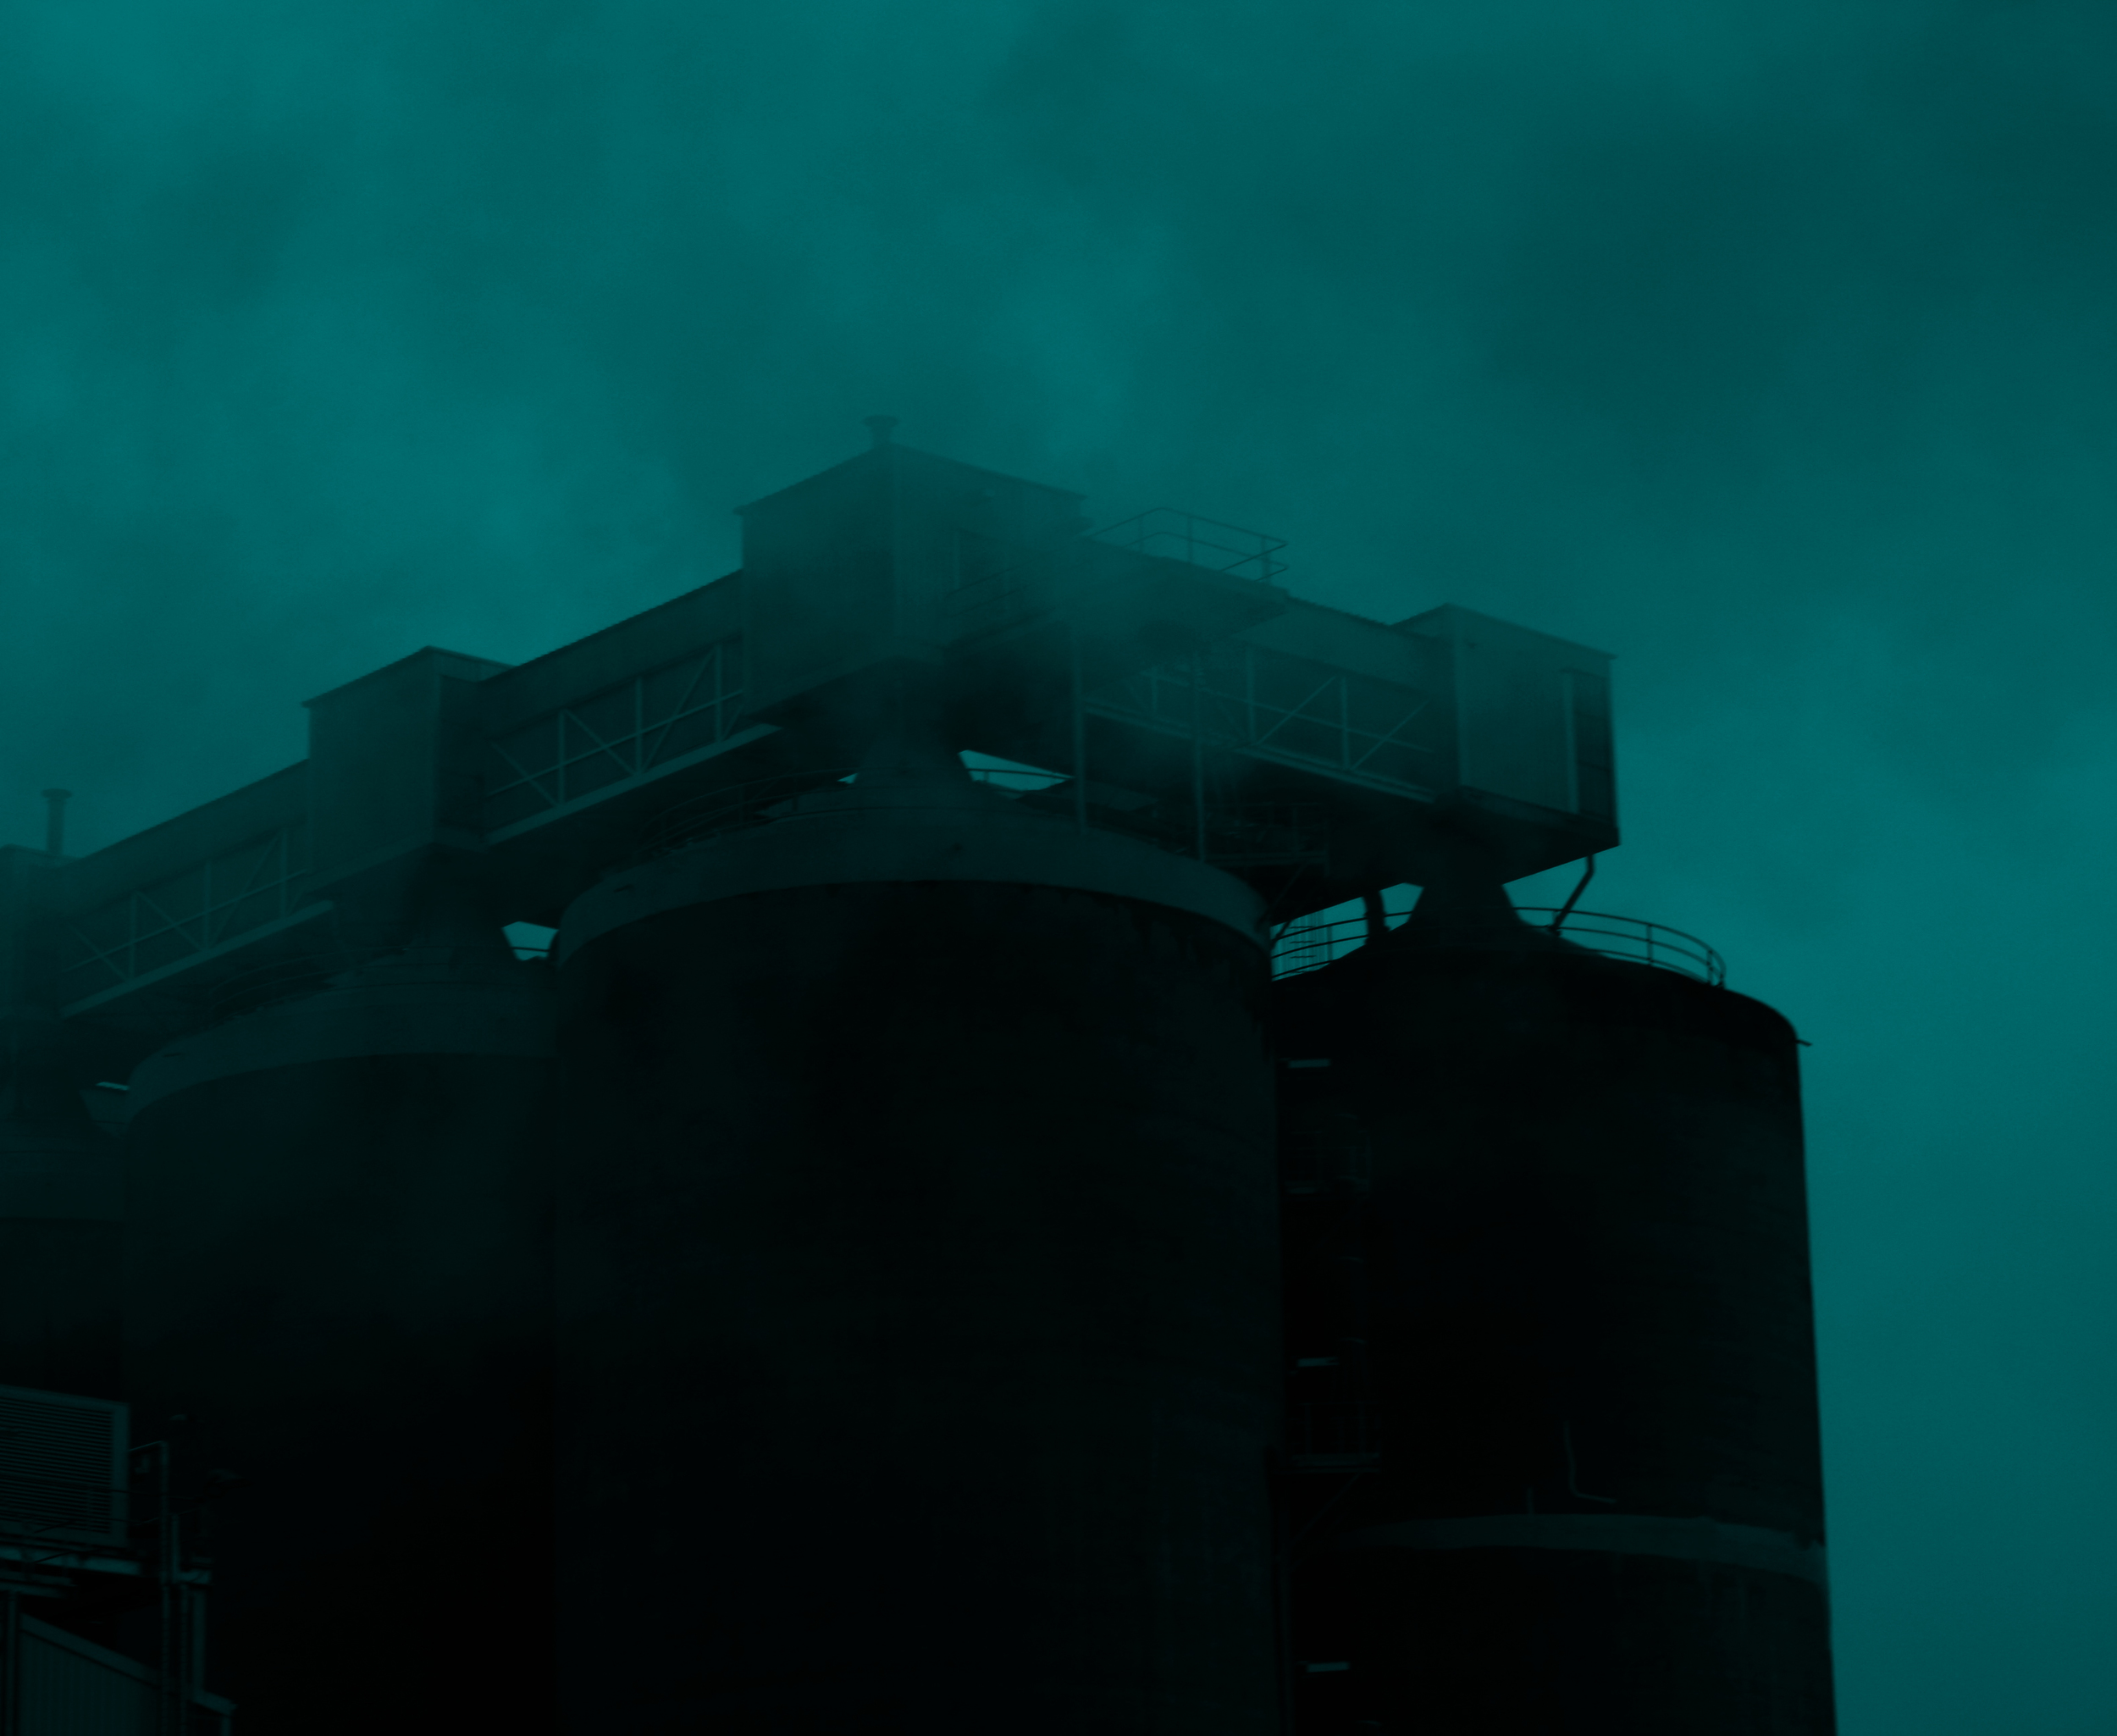 Silos shrouded in ominous cloud in an industrial area.